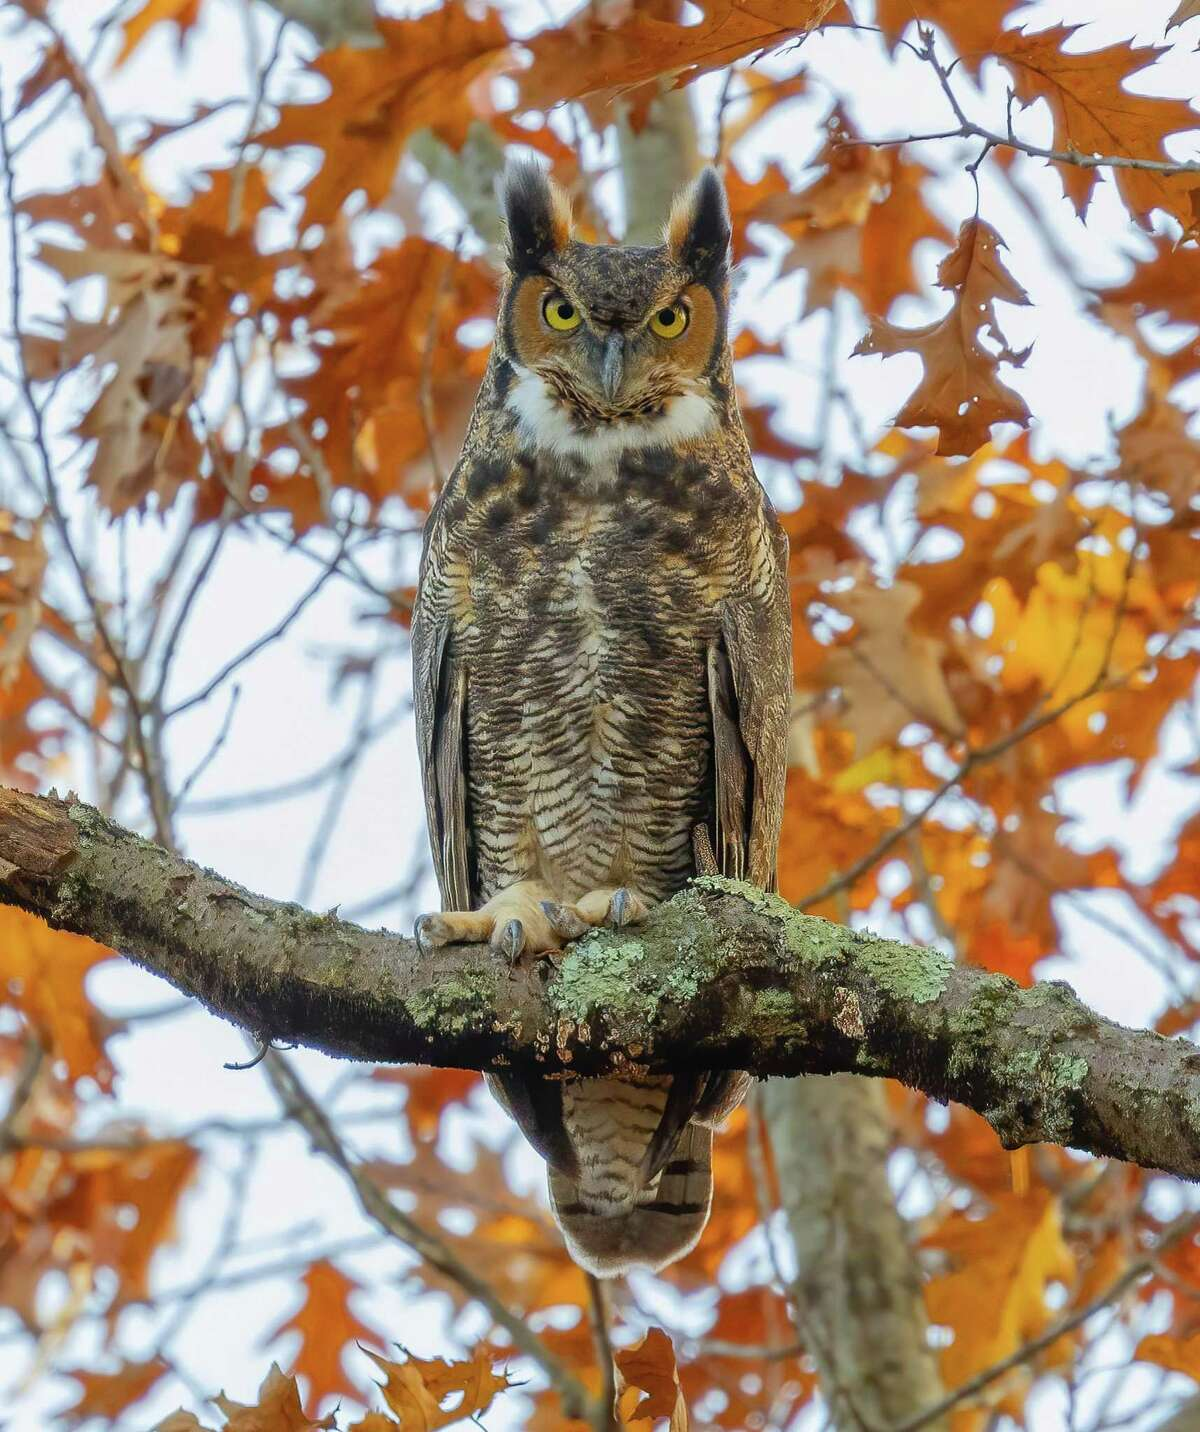 A great horned owl, a large owl native to the Americas, as photographed by Tomas Koeck.